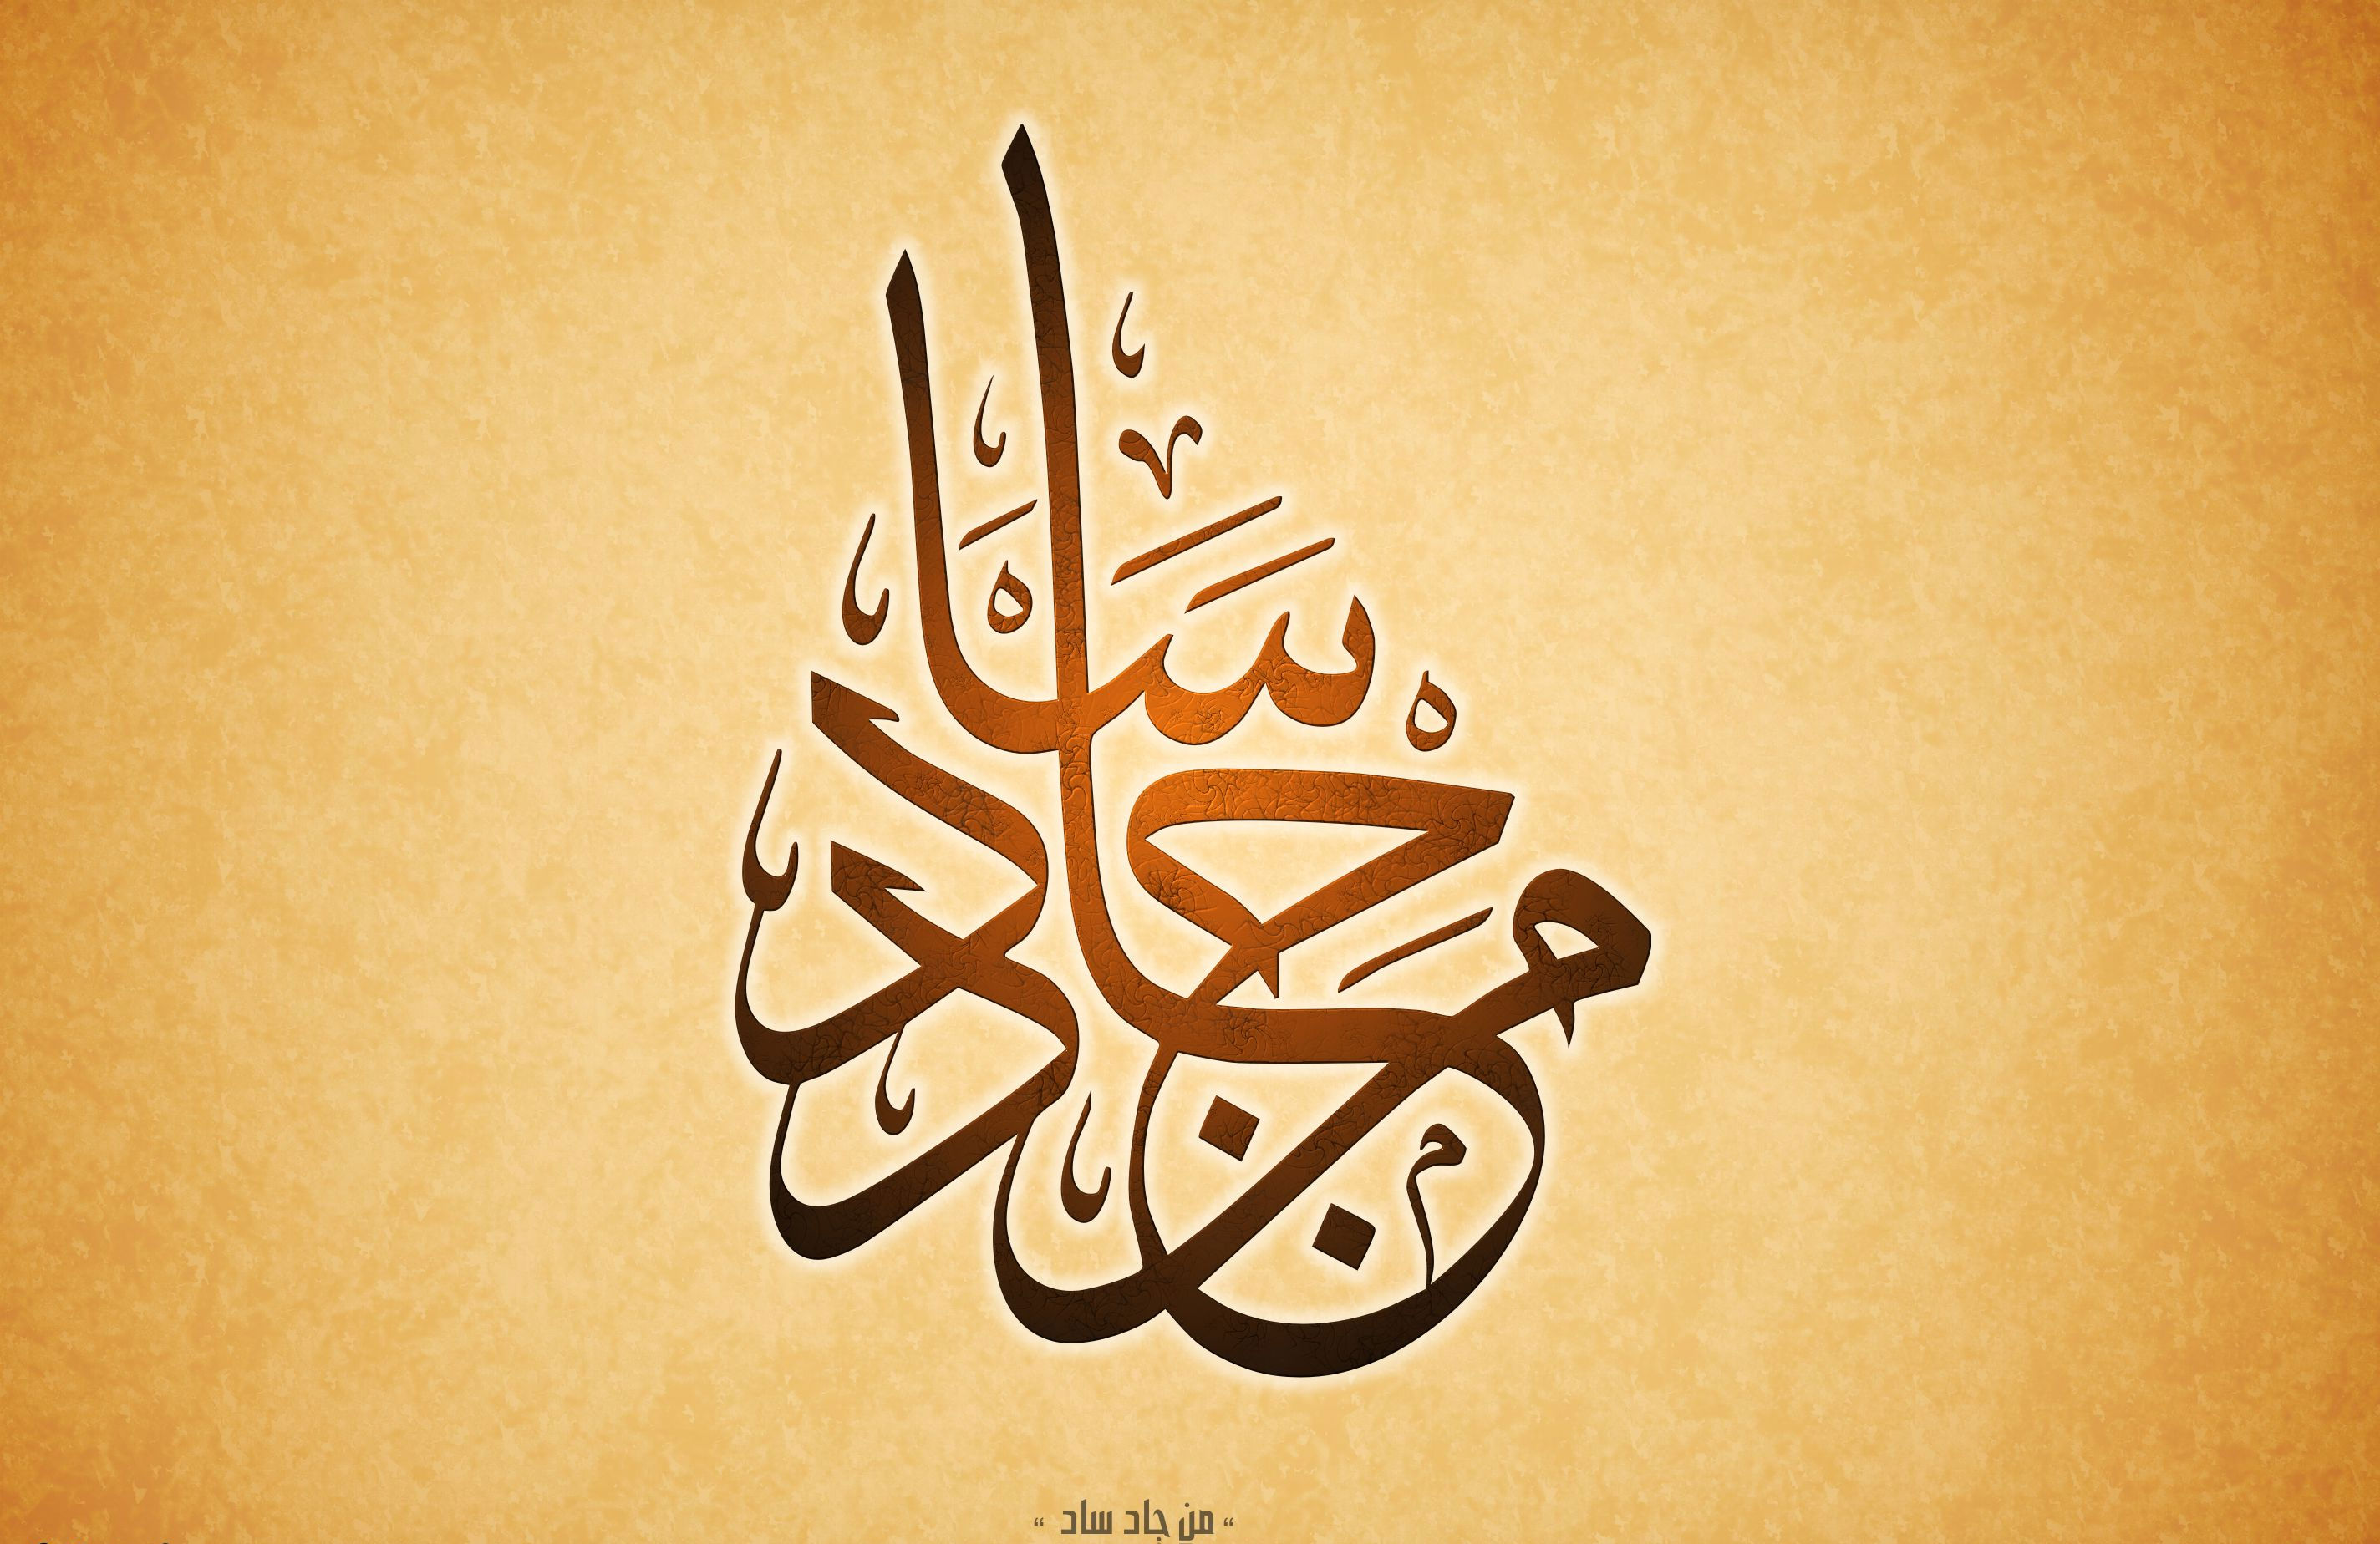 Generosity Proverb In Arabic Computer Wallpapers Desktop